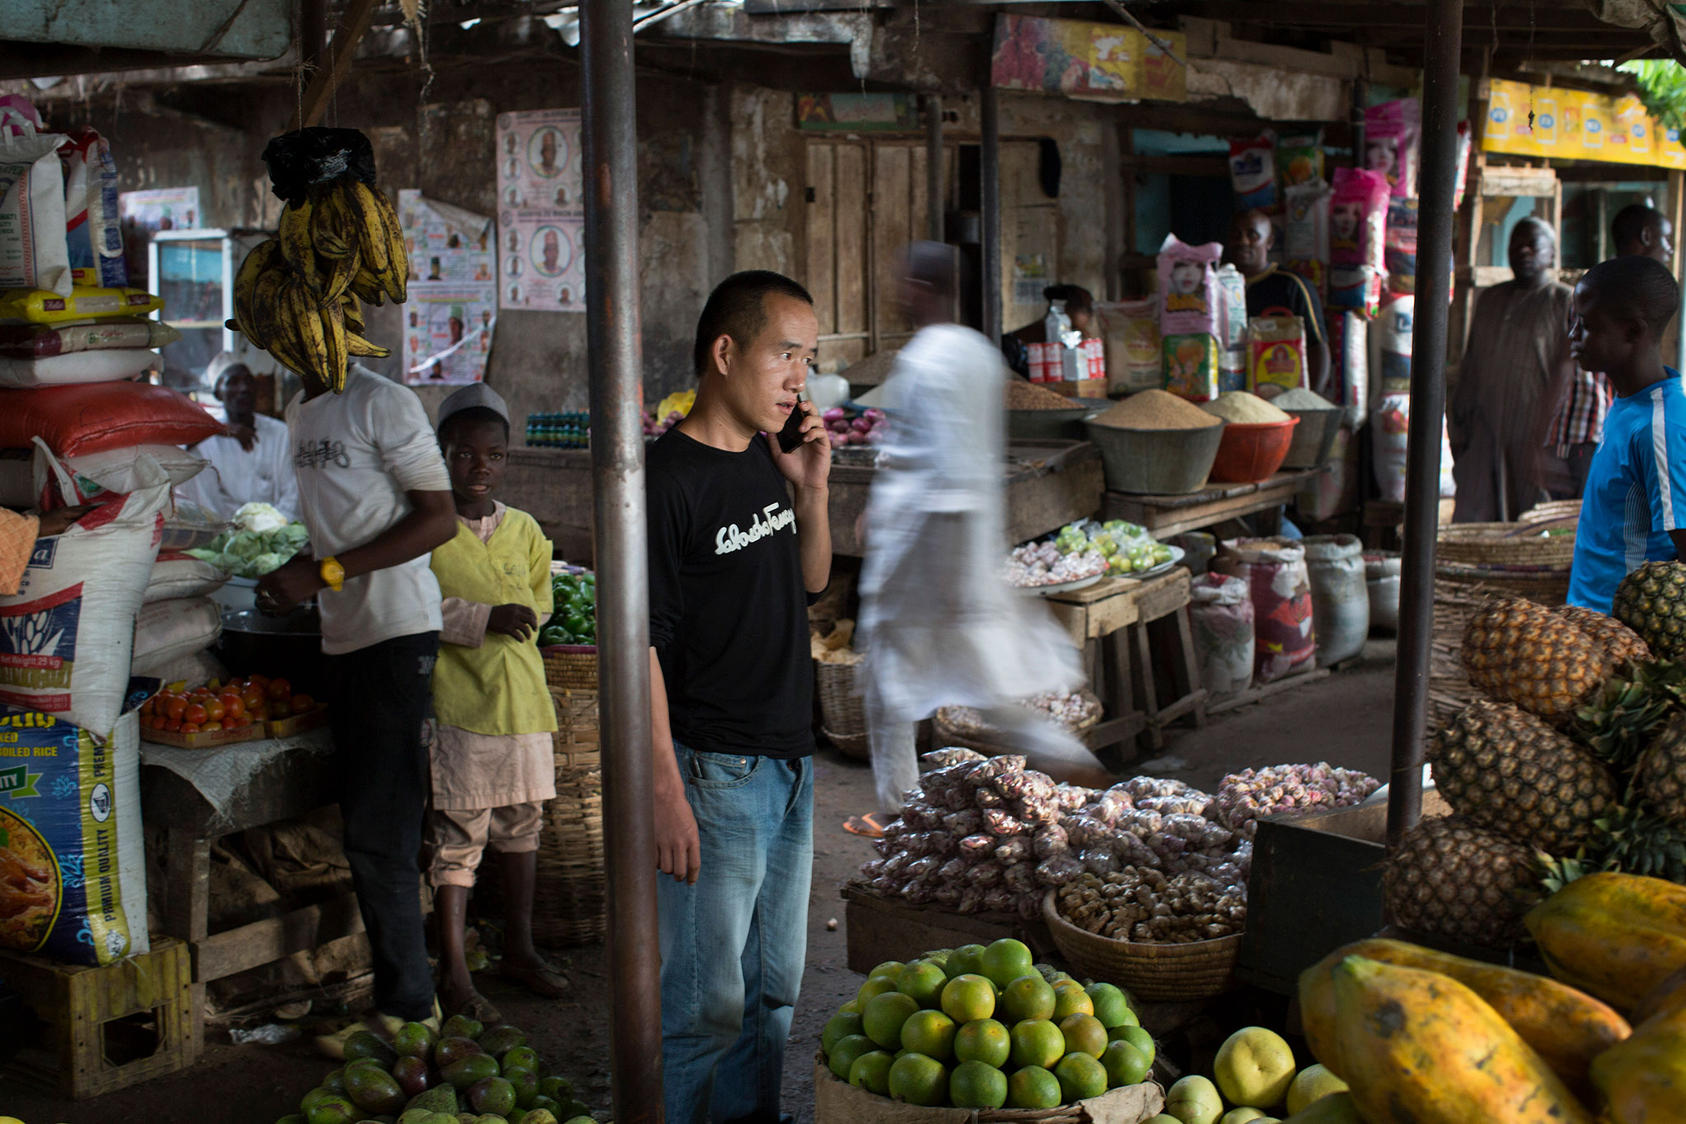 A local market frequented by Chinese customers in Kano, Nigeria, August 2015. Chinese goods are everywhere in Nigeria.